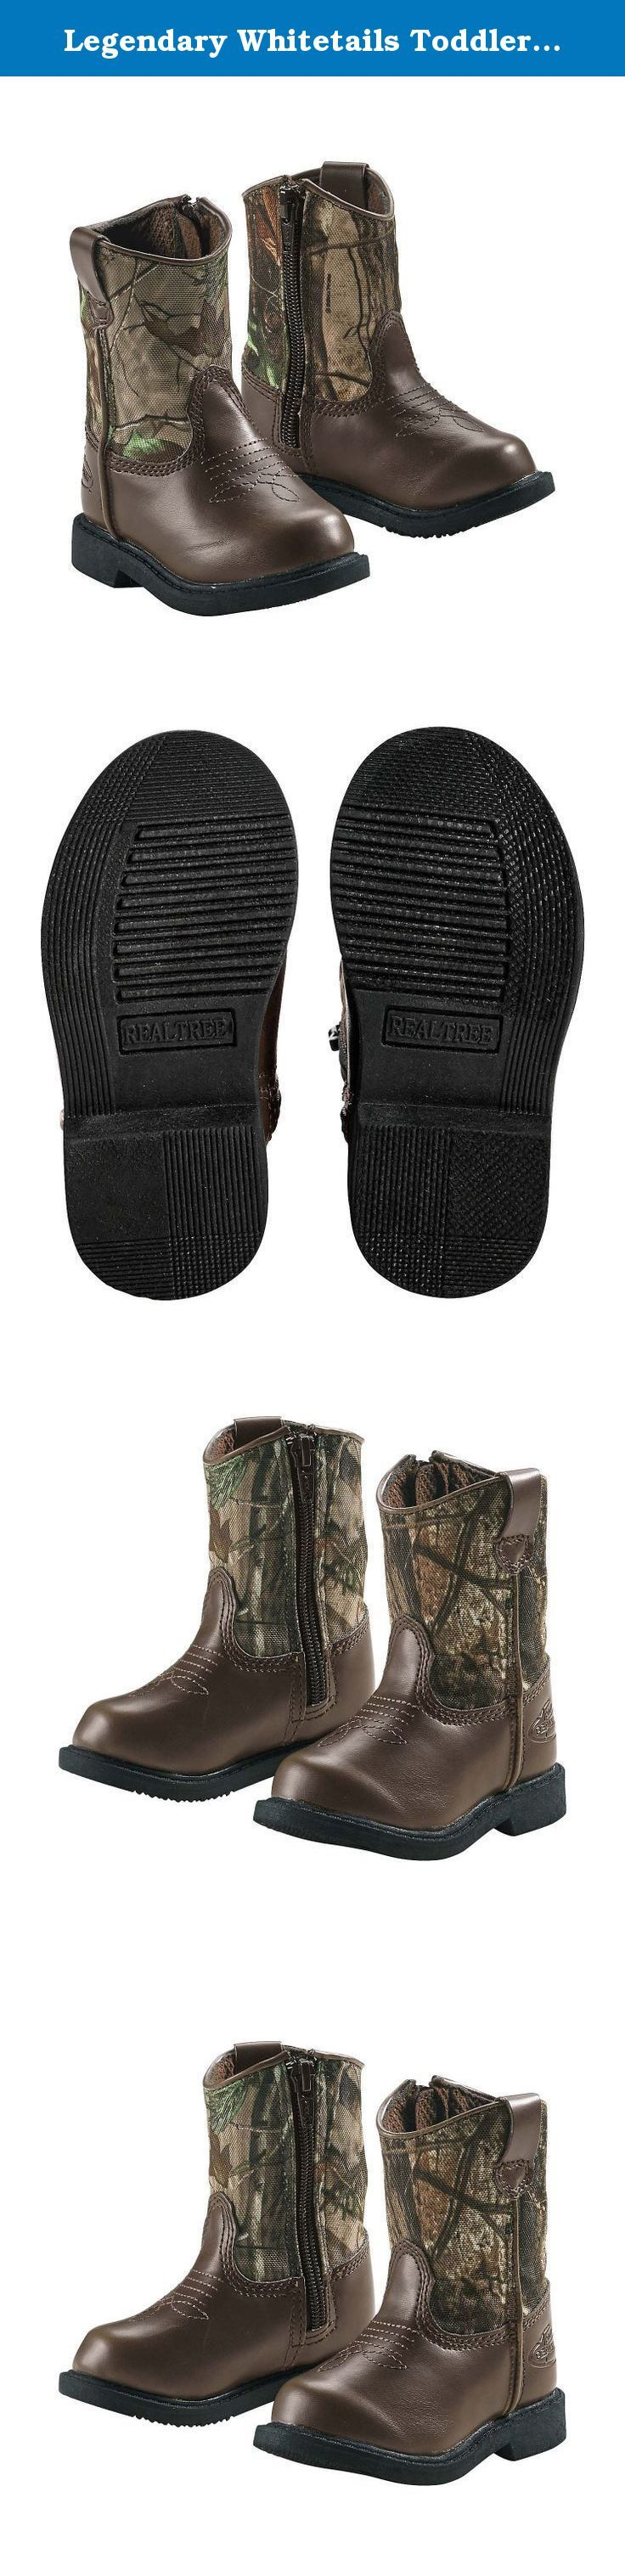 Legendary Whitetails Toddler Boys Lil Dustin Cowboy Boots Dark Brown 9. Let your toddler cowboy kick it in camo! Featuring tough nylon uppers in Realtree® AP Green Camo, your little one will love romping around in these cute boots. Full-length zipper for easy on-off and durable non-marking soles. Material: Man made materials Wash: Wipe clean with a damp cloth. Air dry. .